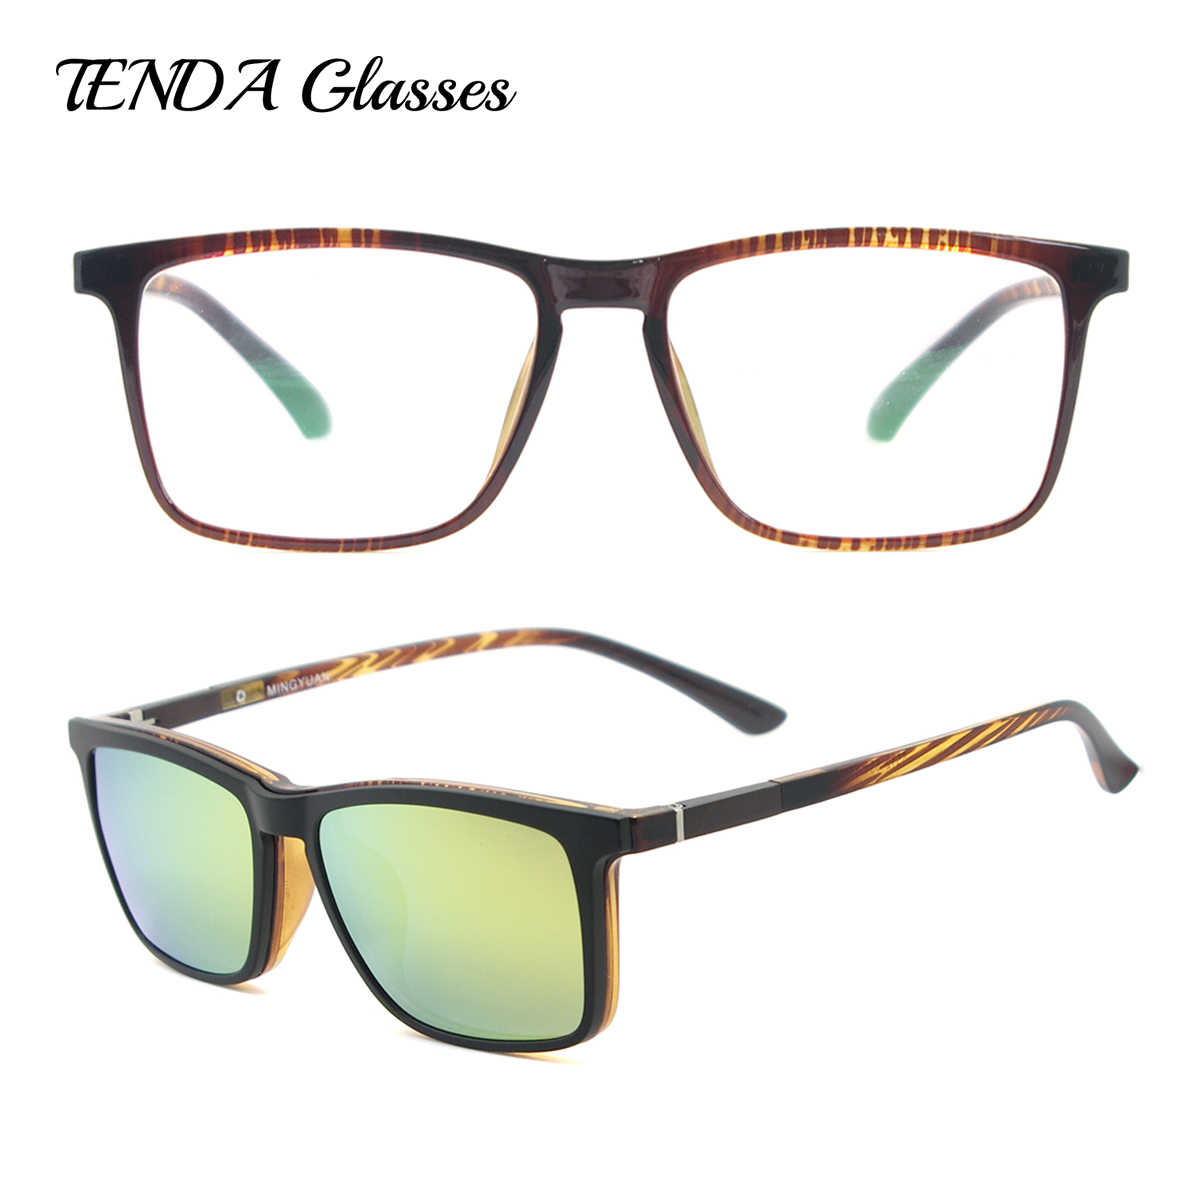 16a37c42ea ... Sun Glasses Acetate Wooden Texture Bamboo Polarized Sunglasses For Prescription  Lenses. RELATED PRODUCTS. Men Square Polarized Clip On Sunglasses ...